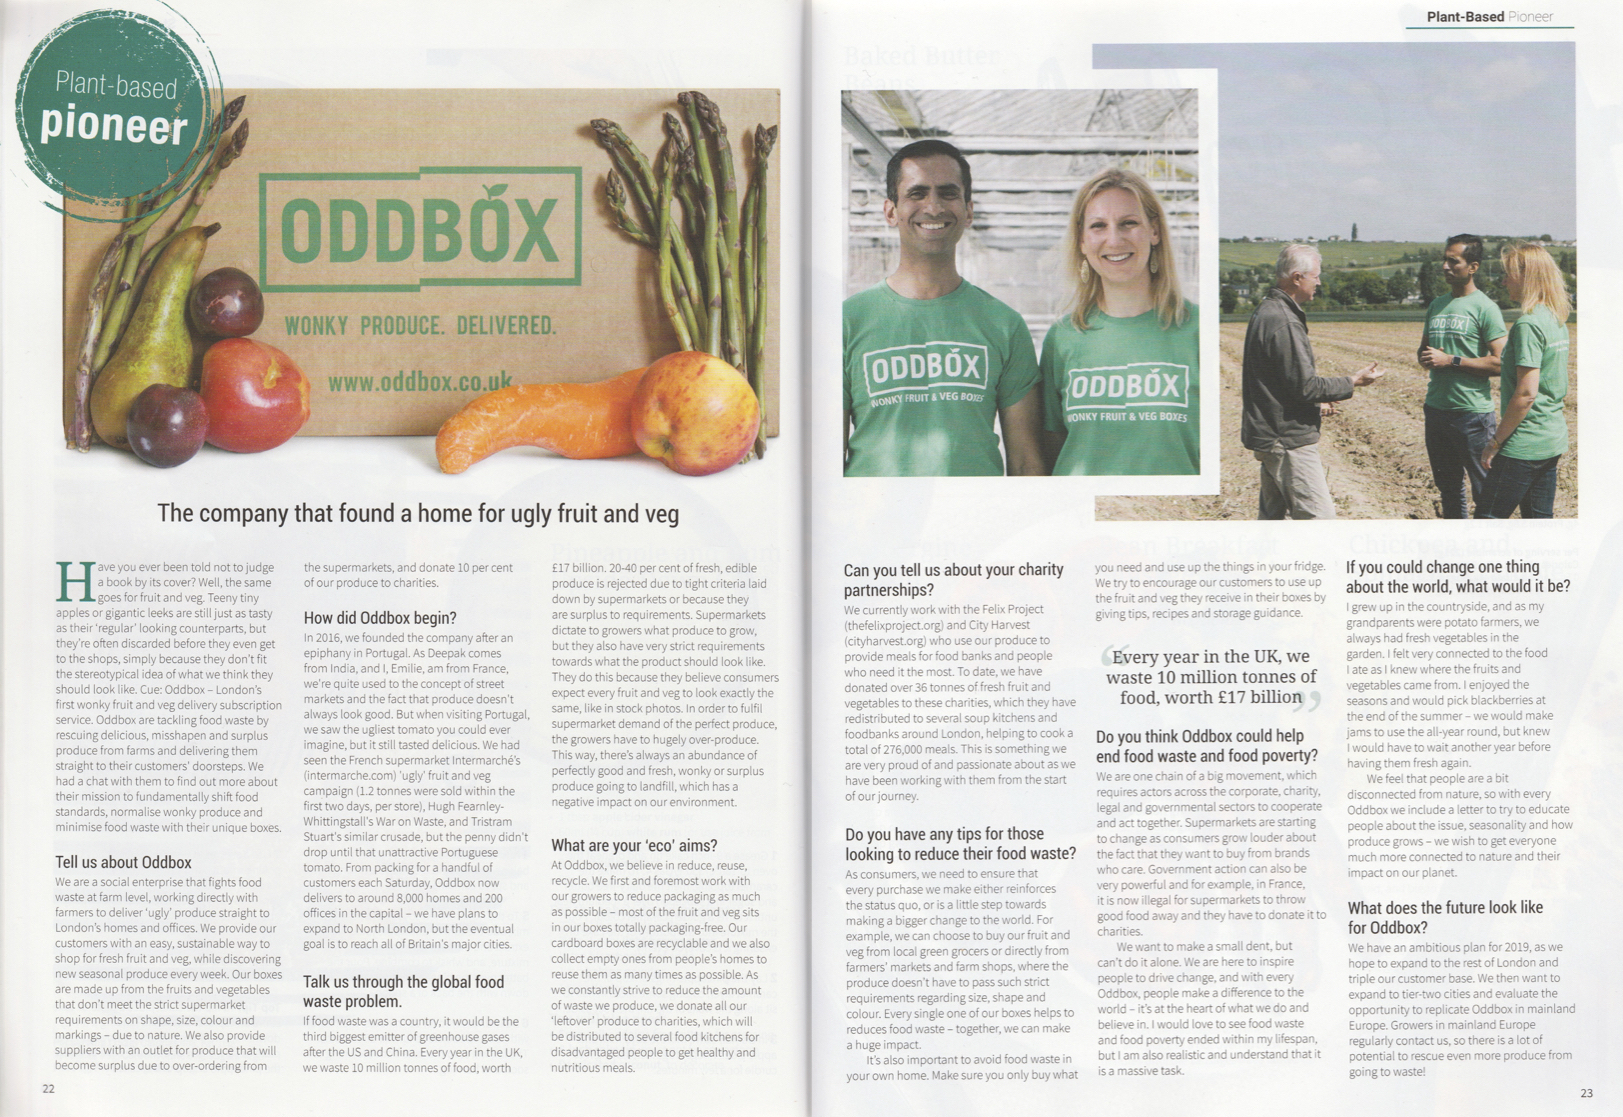 The company that found a home for ugly fruit and veg (PlantBased Magazine - 05/19) -